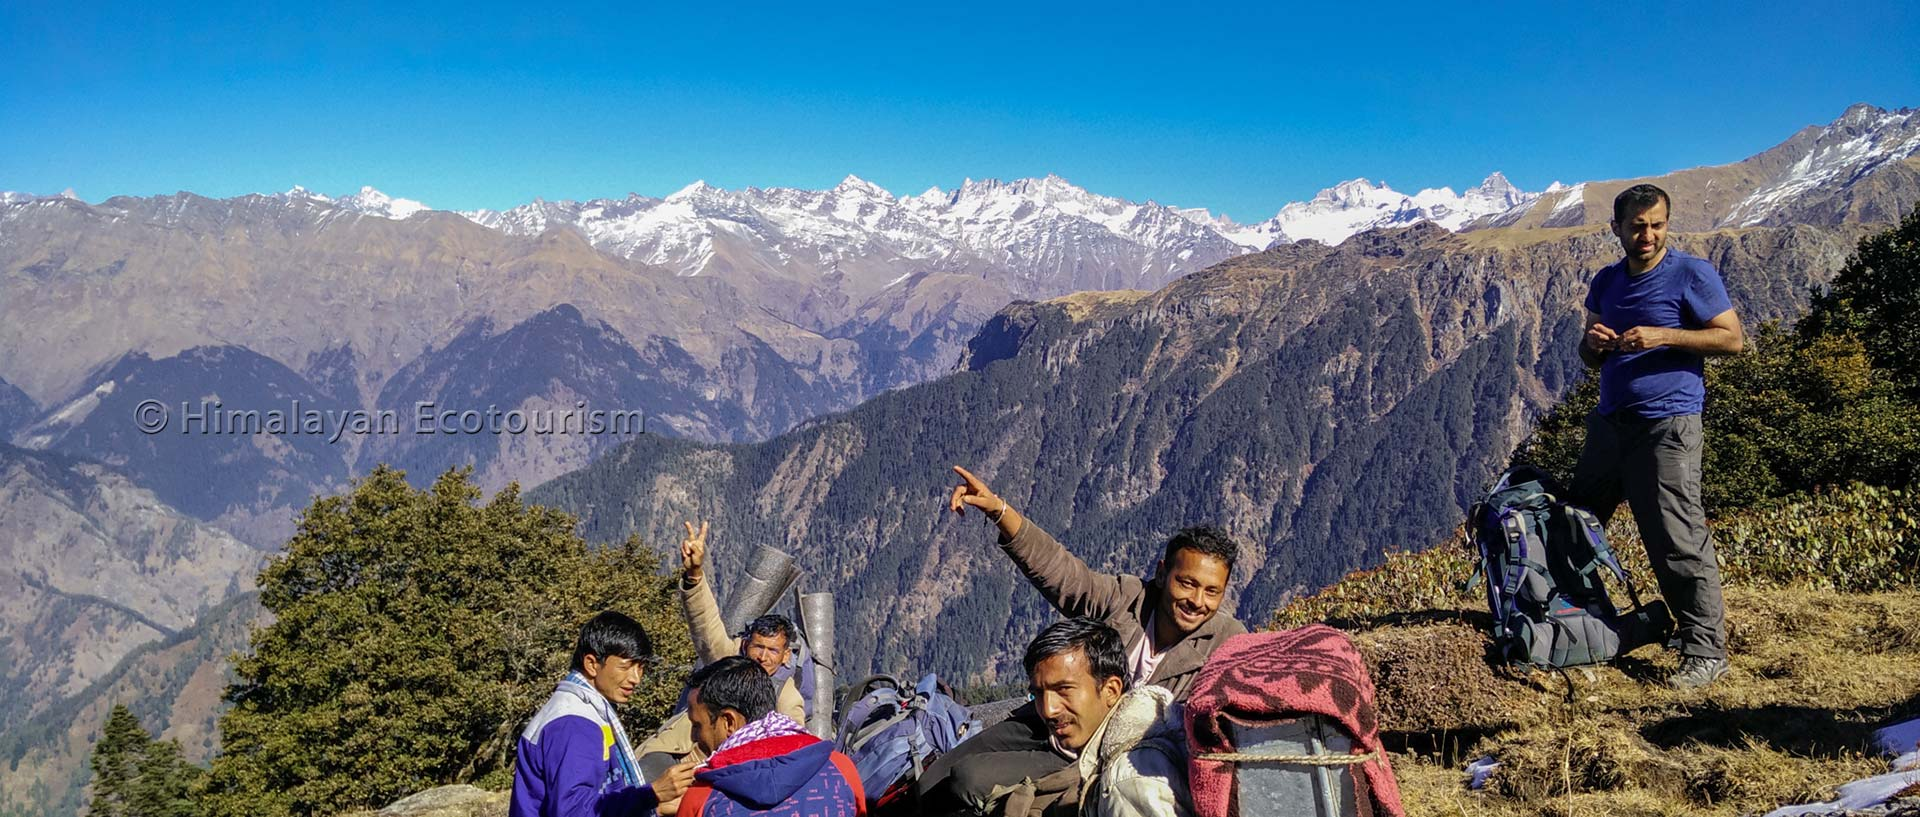 Ookhal trek in the GHNP.